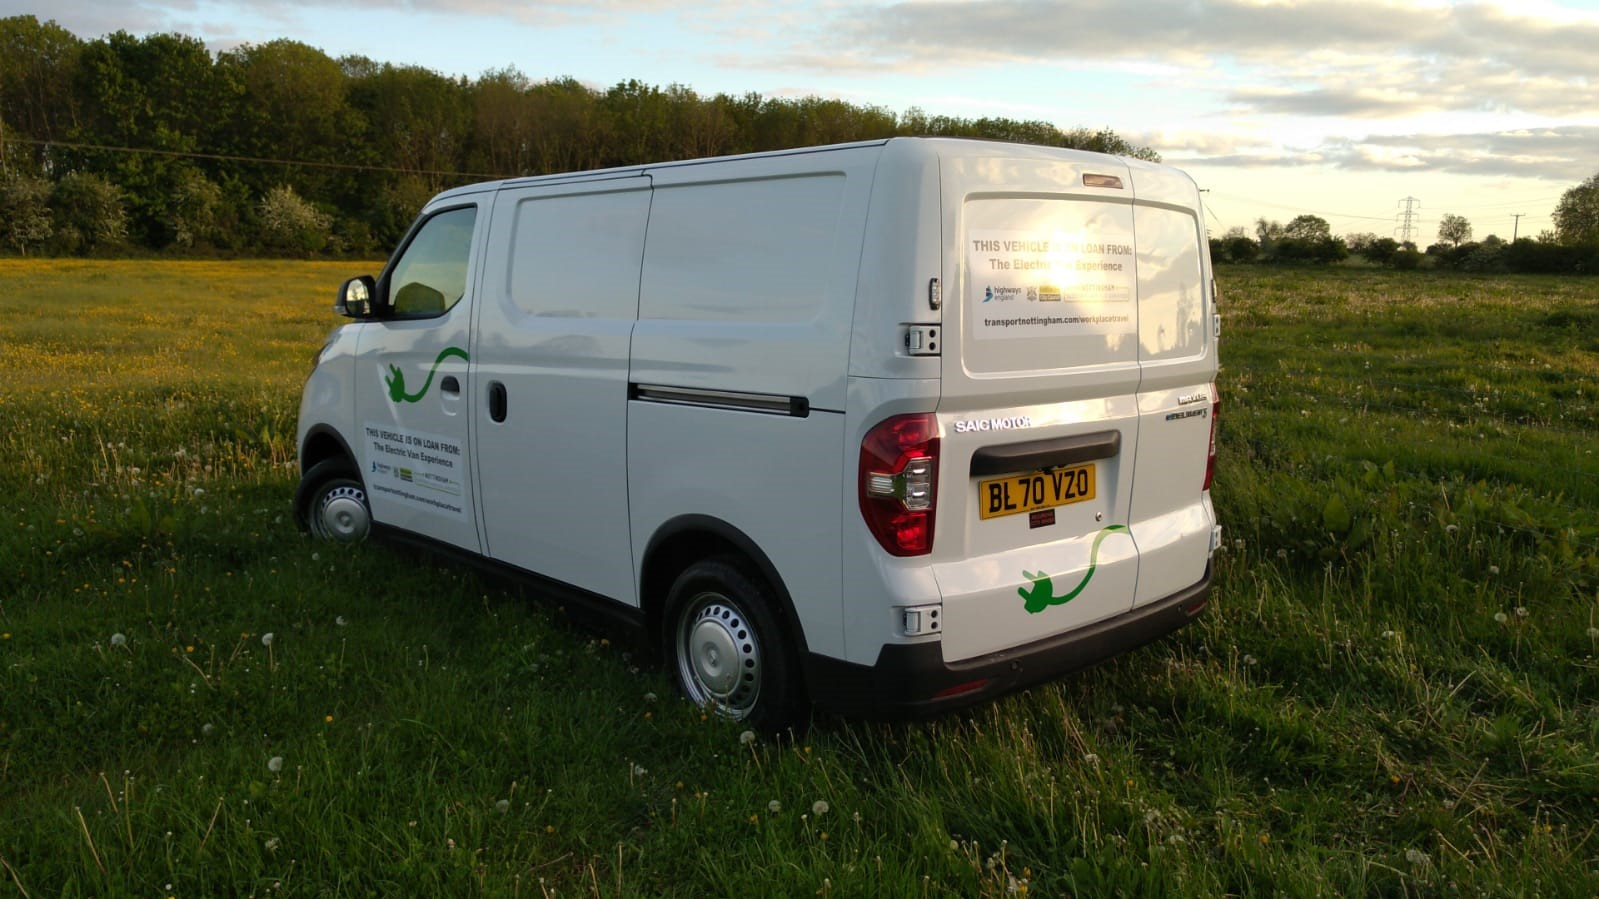 Notts Funeral Directors Trial City Council's Electric Van Experience